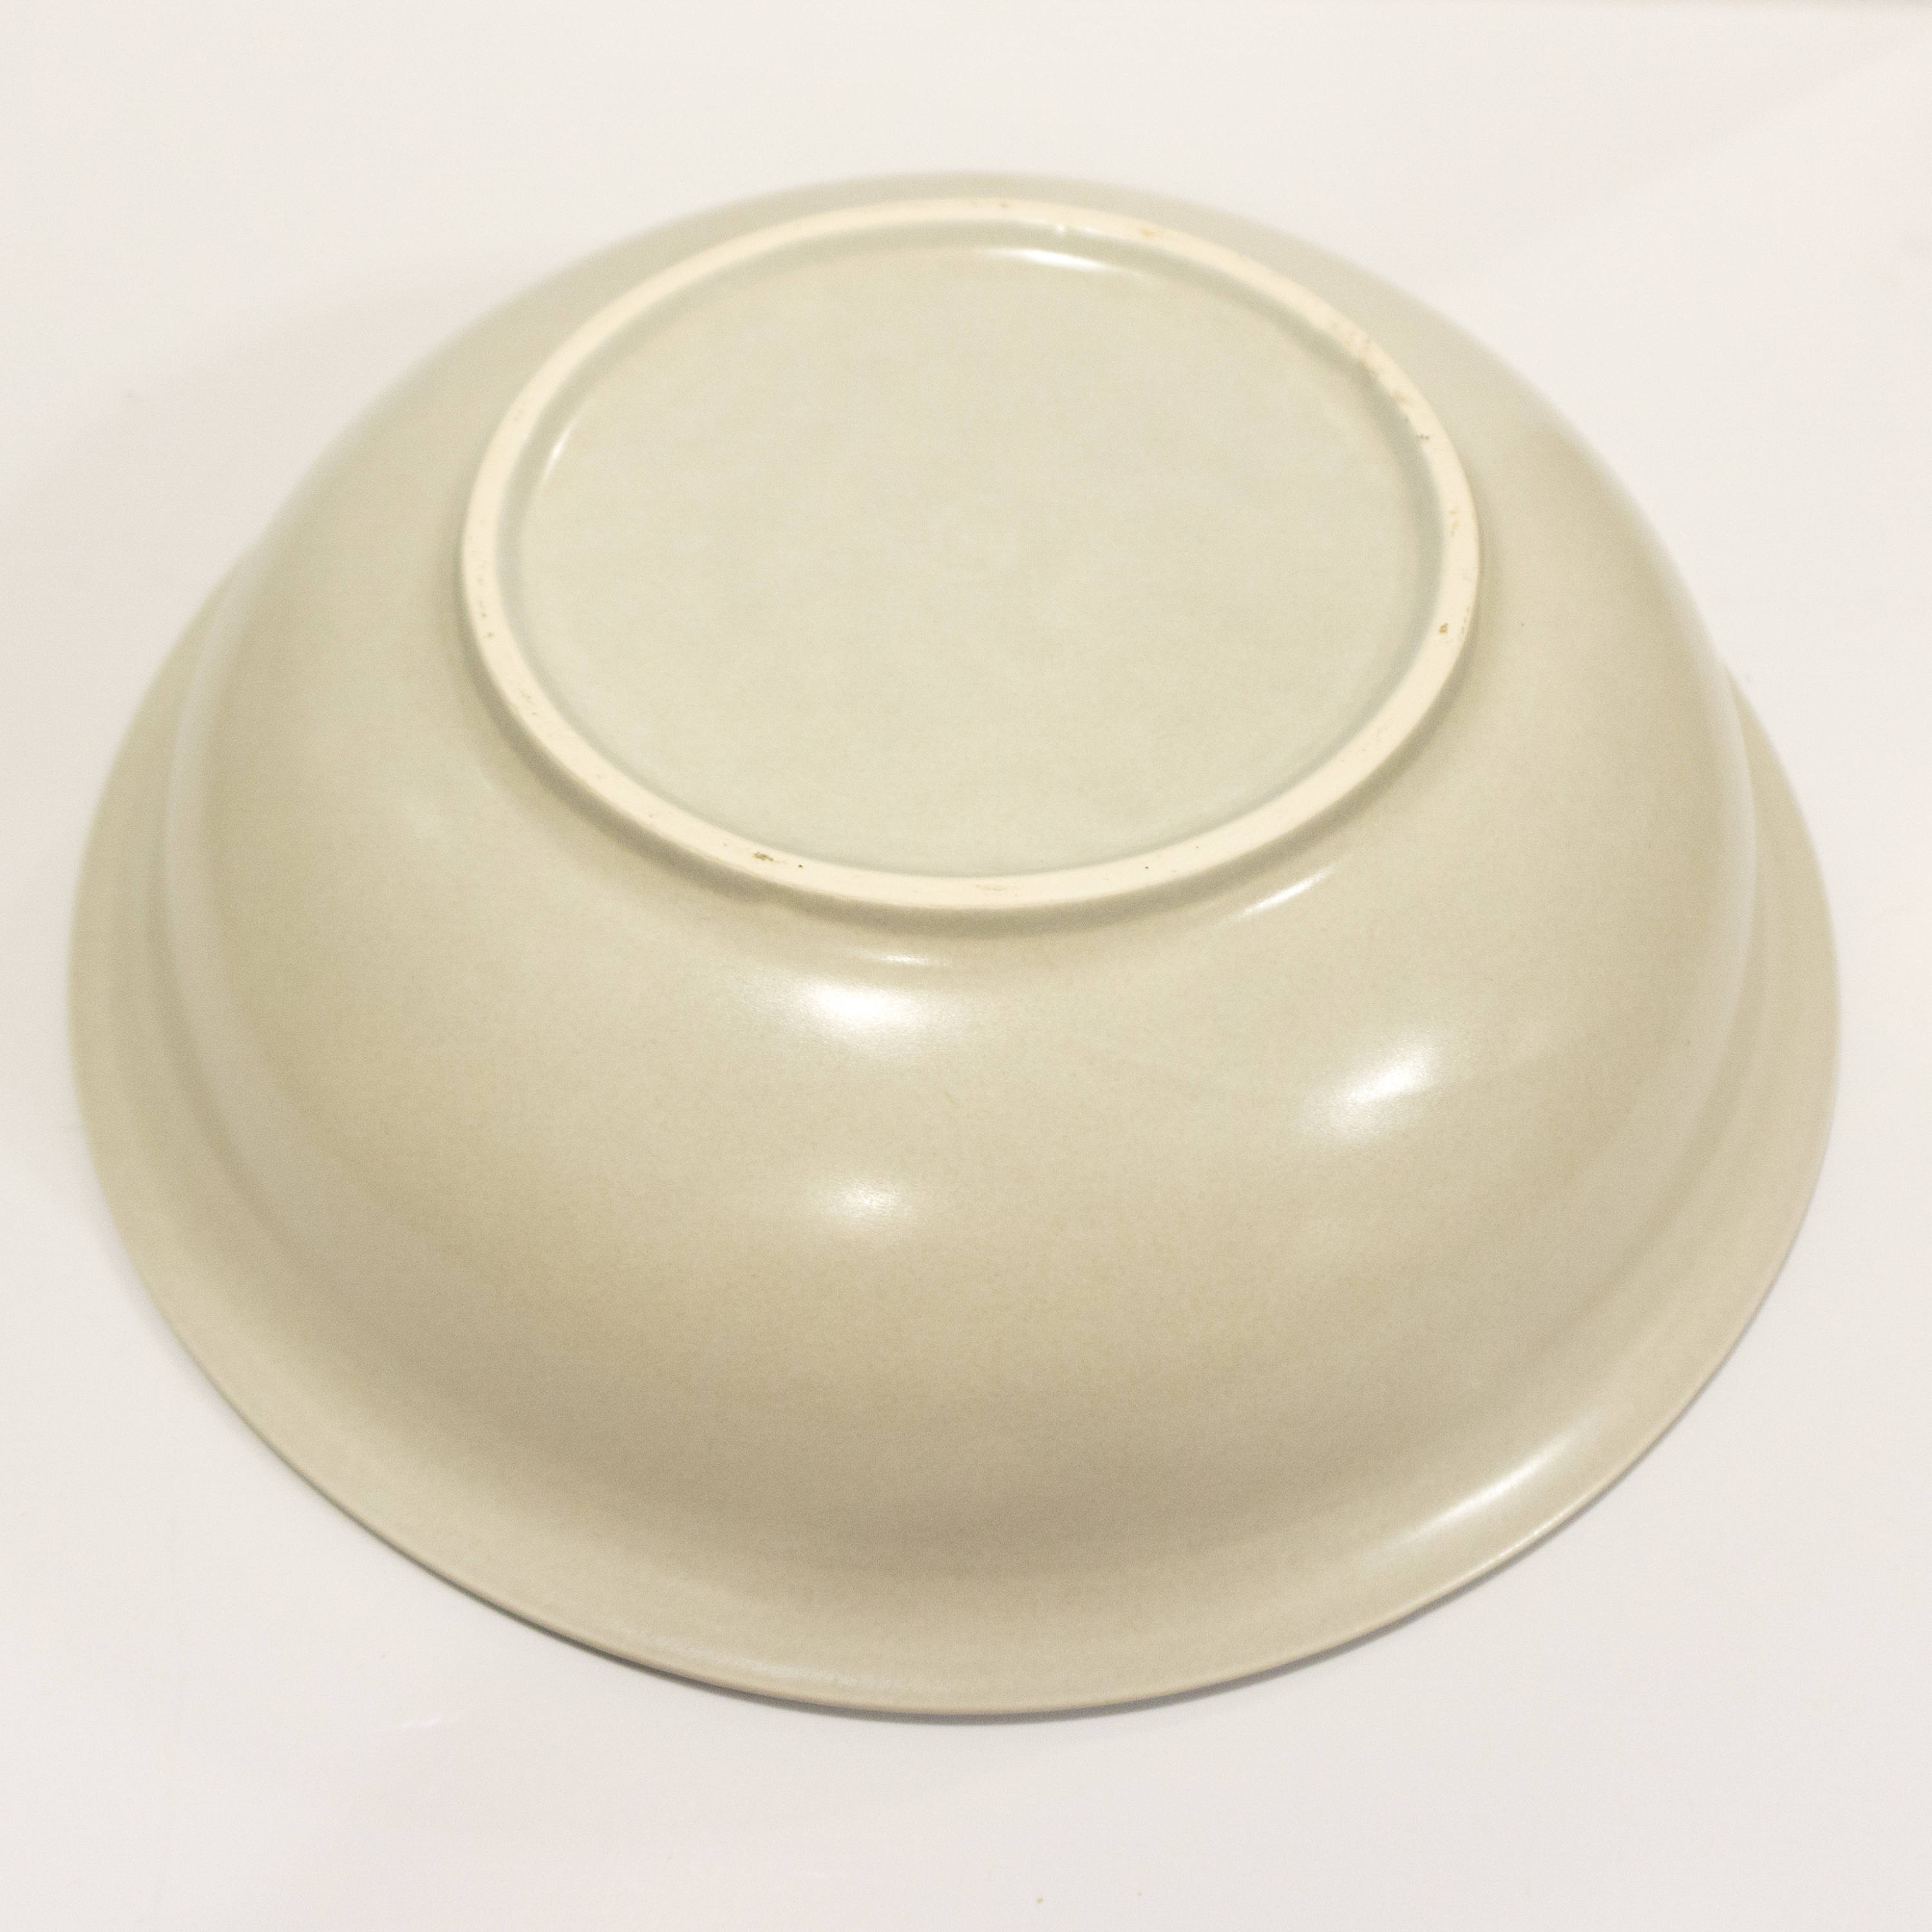 "Vintage 12"" Large Salad Serving Bowl in Yorktowne (USA) by Pfaltzgraff Beige and Blue Stoneware"